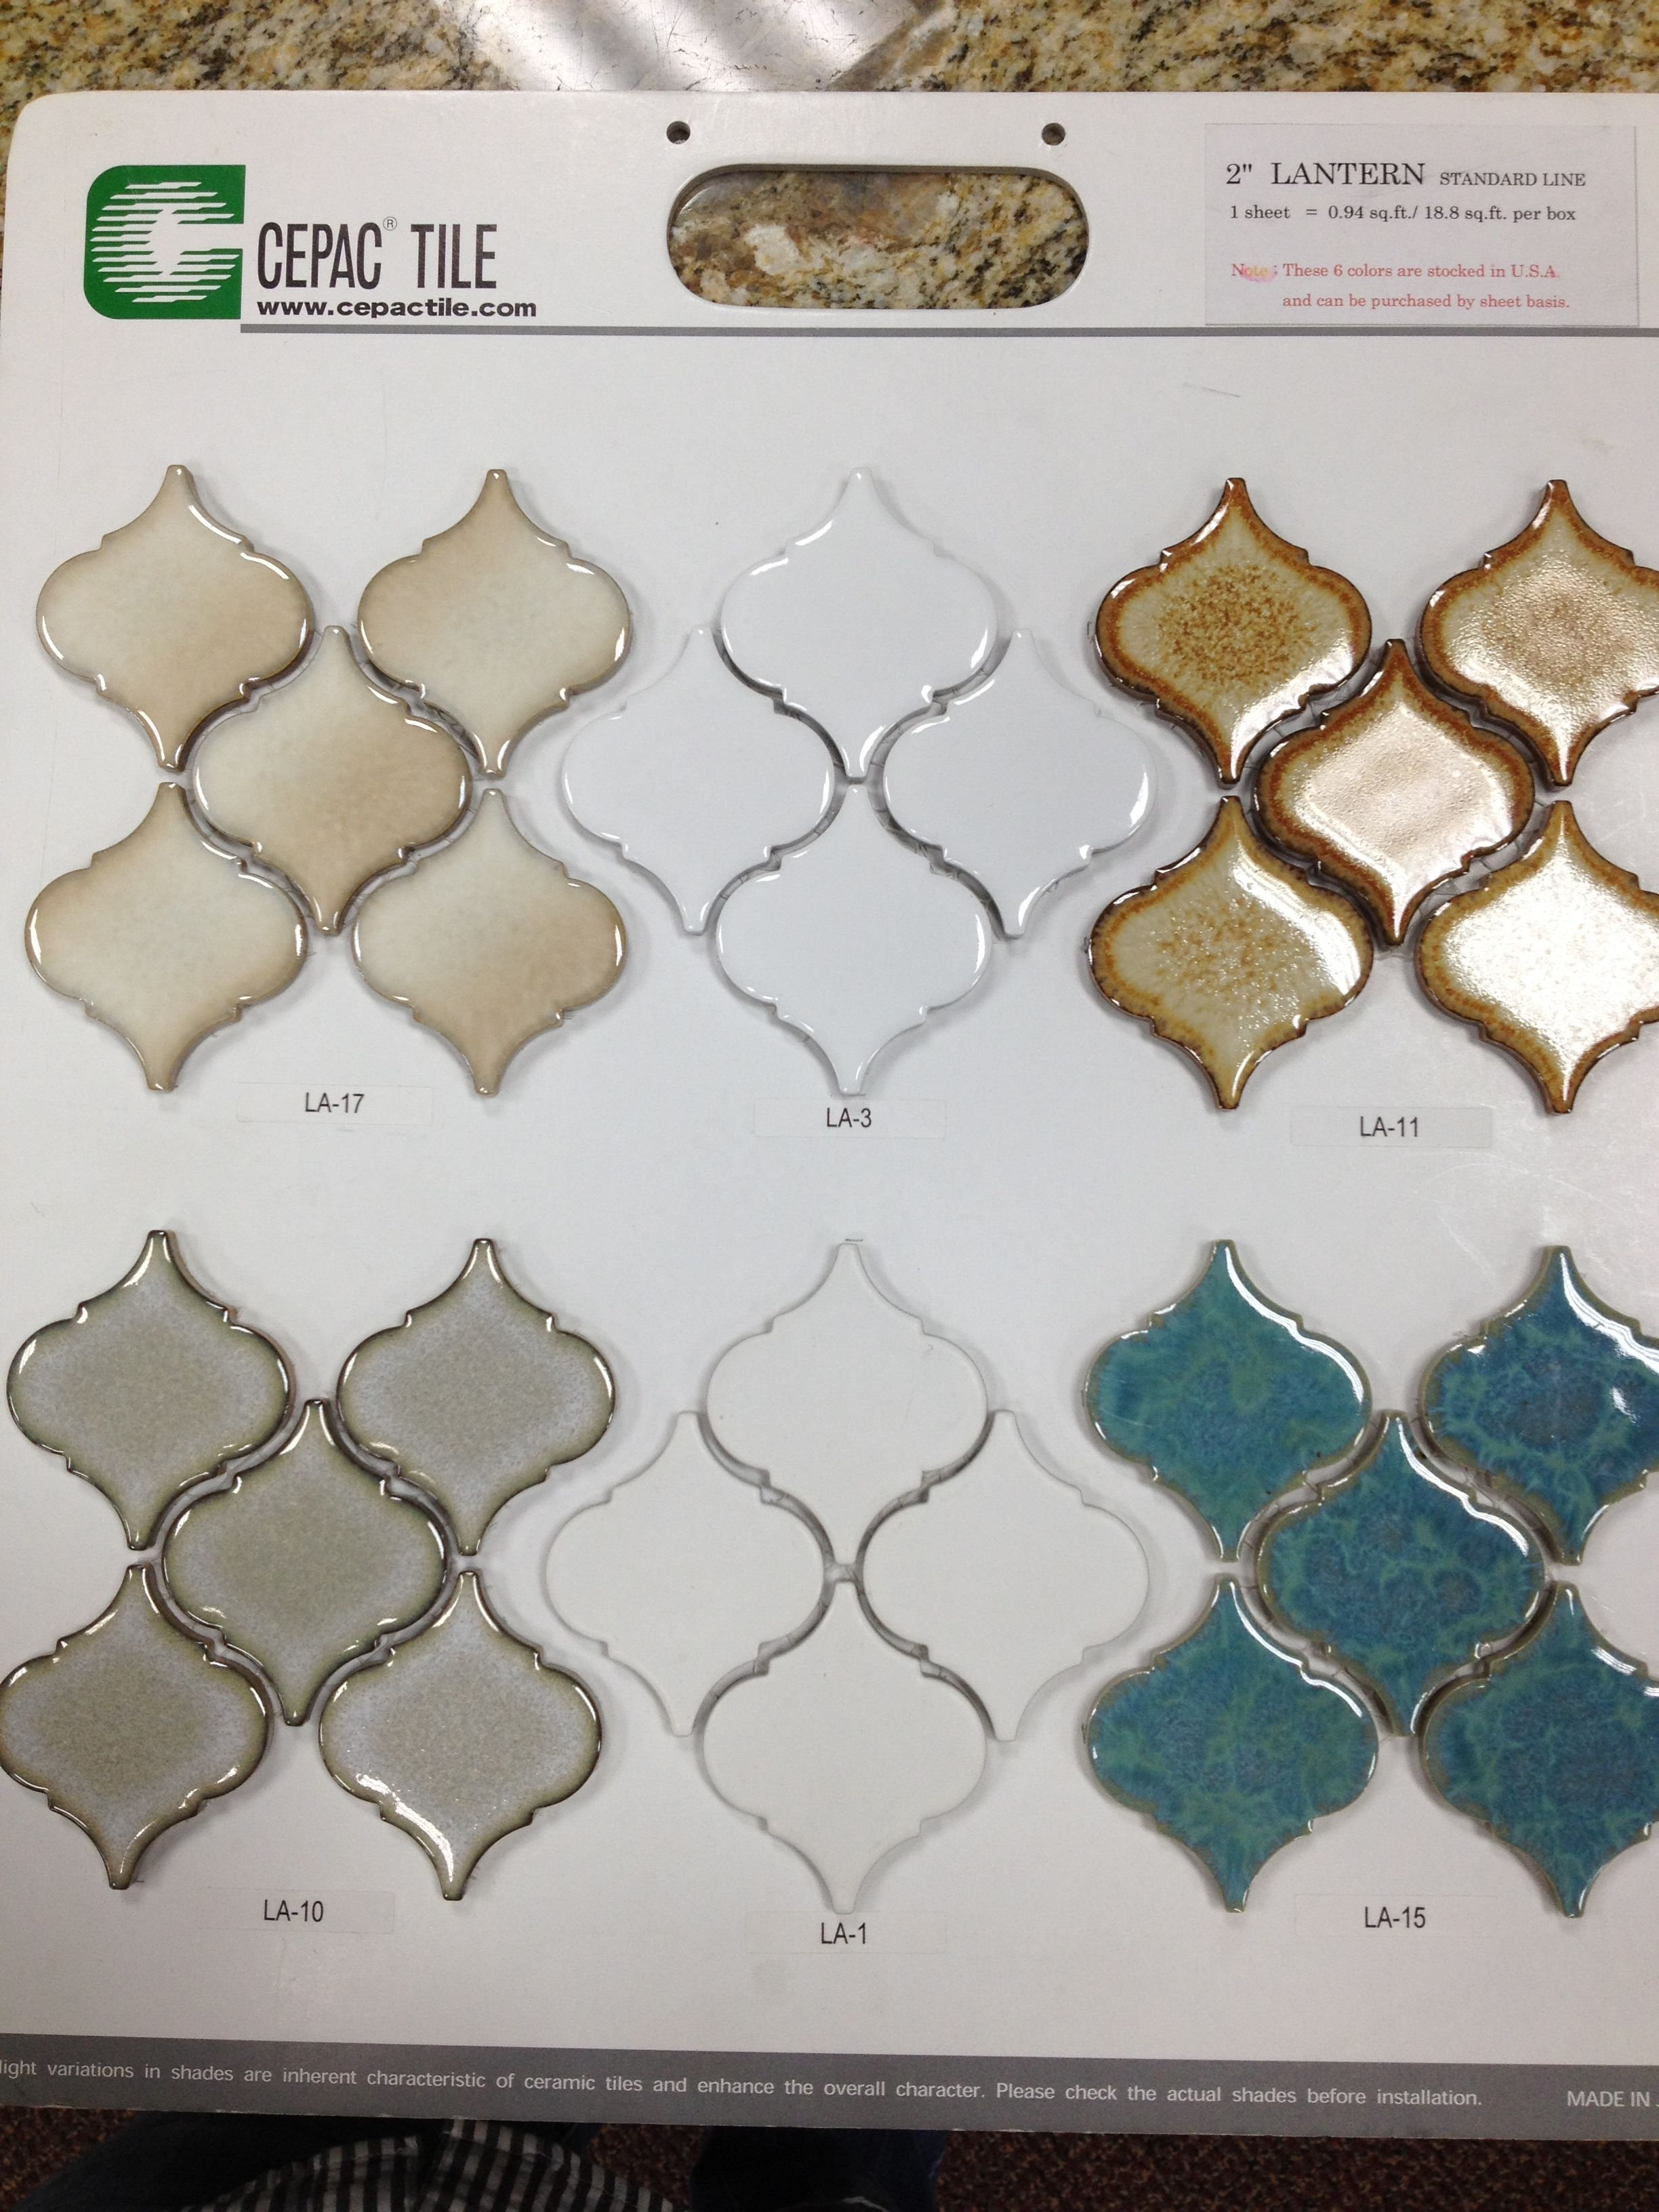 Glass moroccan style tile for backsplash in kitchen...Bottom left g ...